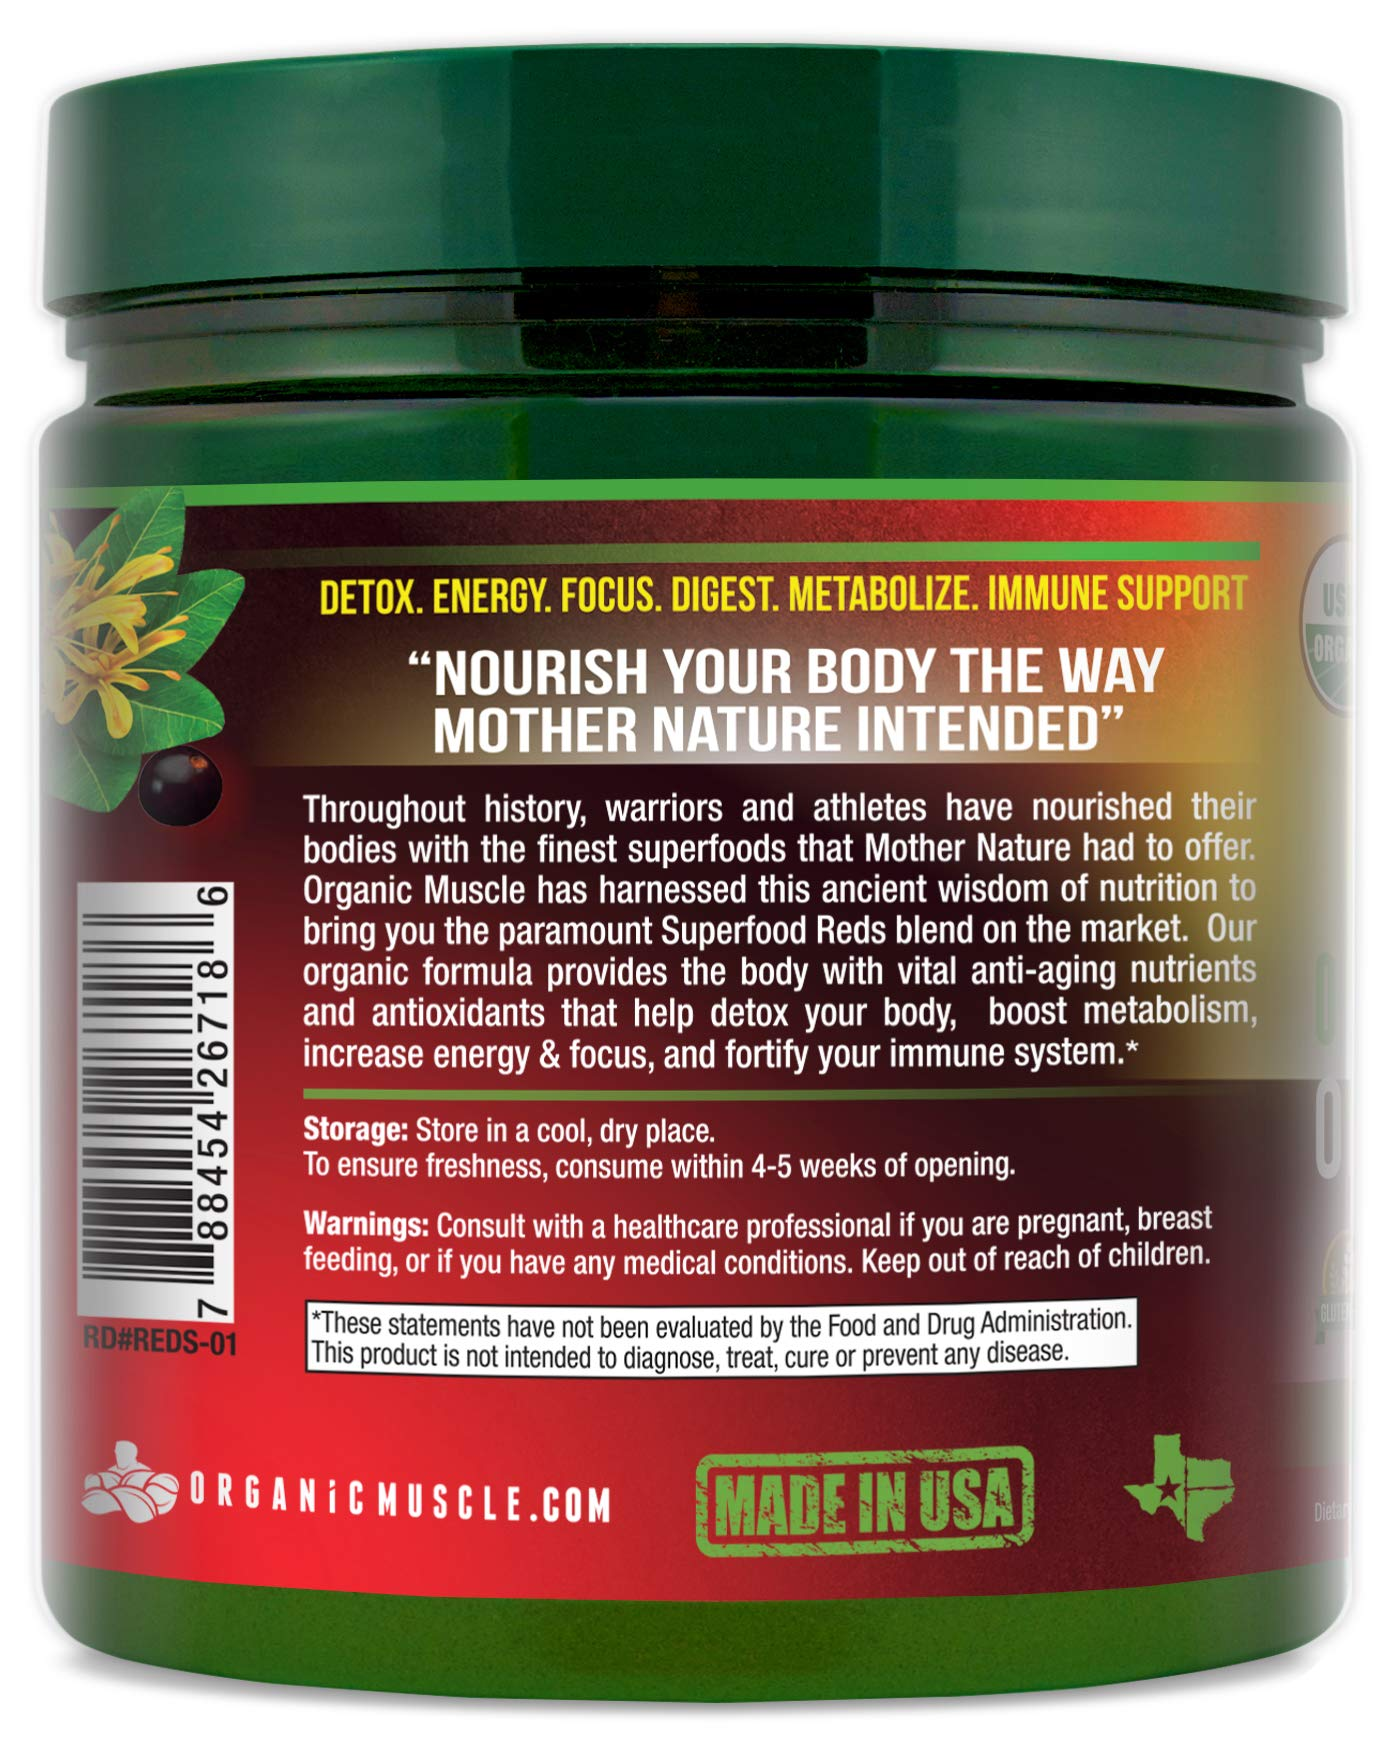 Certified Organic Superfood Reds Powder | Vital Reds Juice Supplement for Detox, Energy, Focus, Digestion, Metabolic Boost & Anti-Aging | Vegan, Non-GMO, Berry Flavor, 30 Day Supply | ORGANIC MUSCLE by Organic Muscle (Image #3)